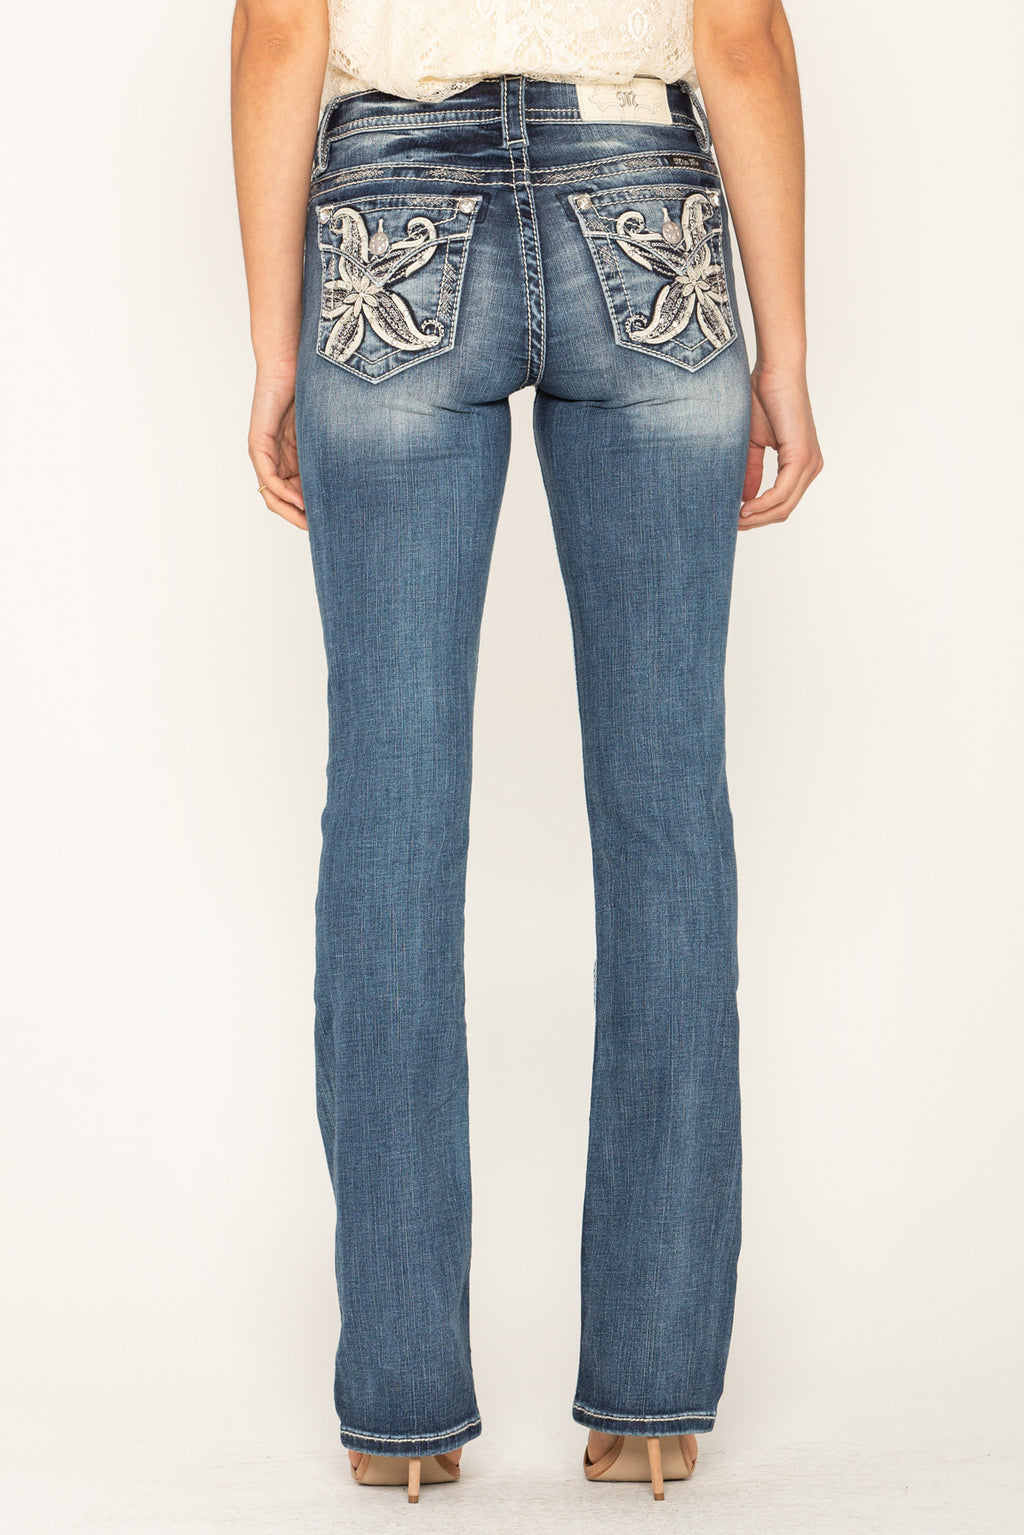 28a404eb IN THE TROPICS SLIM BOOTCUT JEANS